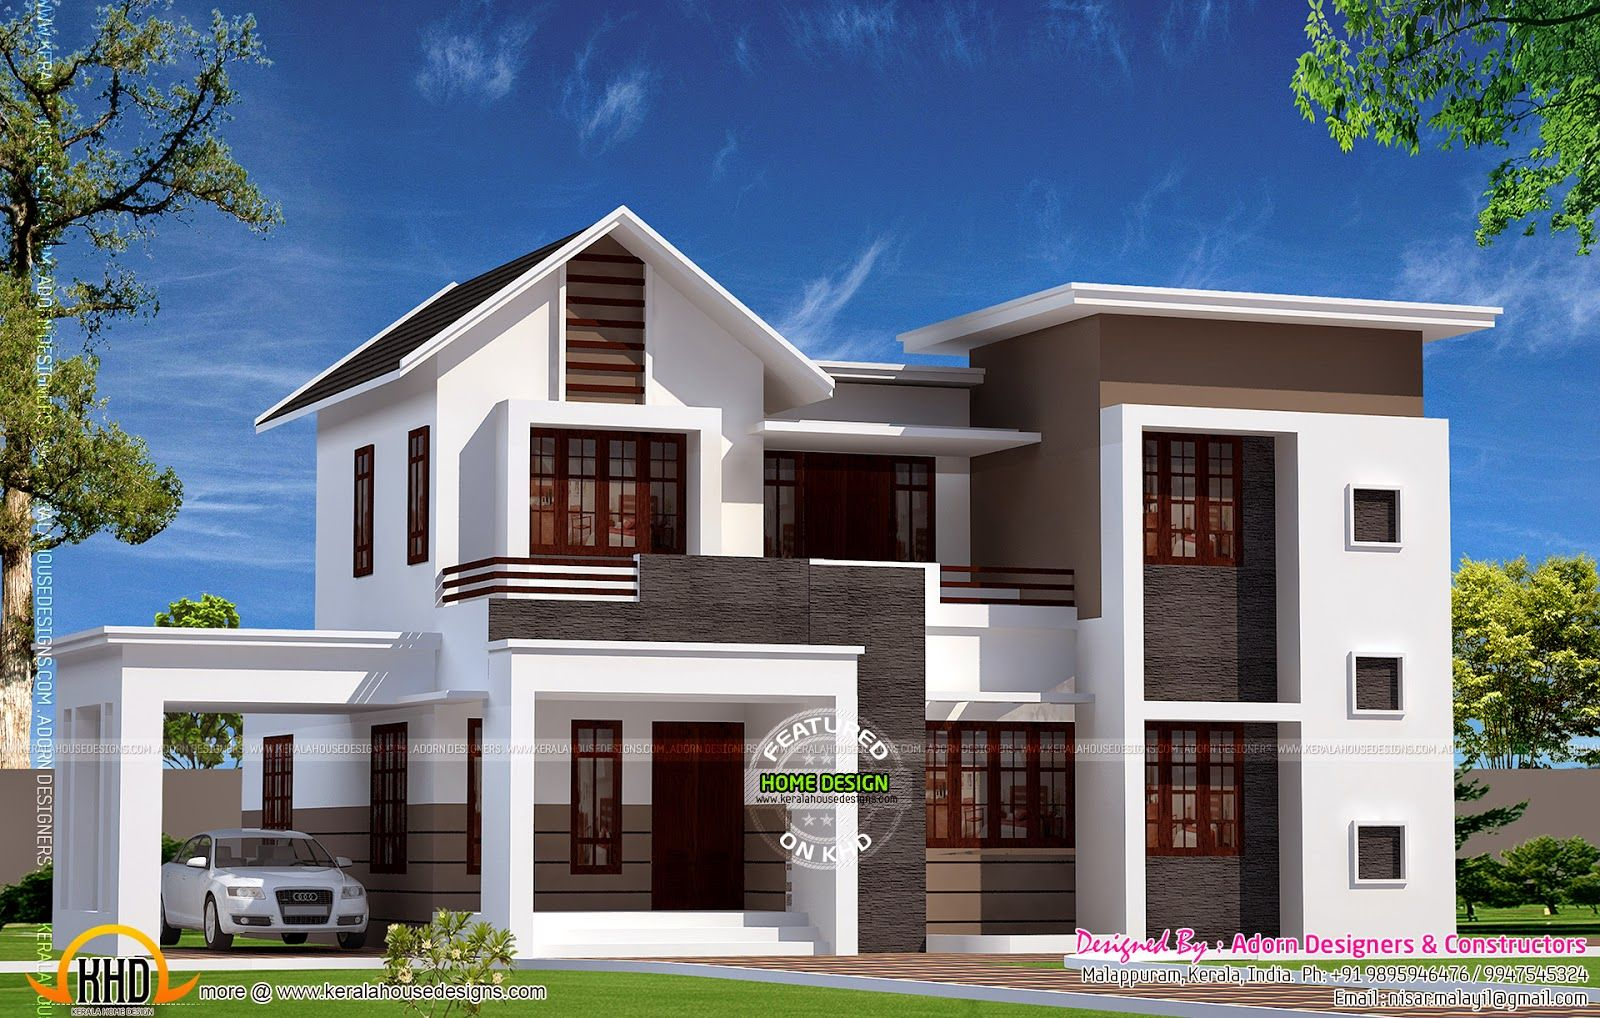 Contemporary Home Designs At Malappuram Part - 16: Nice Home Design Edepremcom Beautiful Indian Houses Beautiful . - Home And  Landscaping Design - Home And Landscaping Design